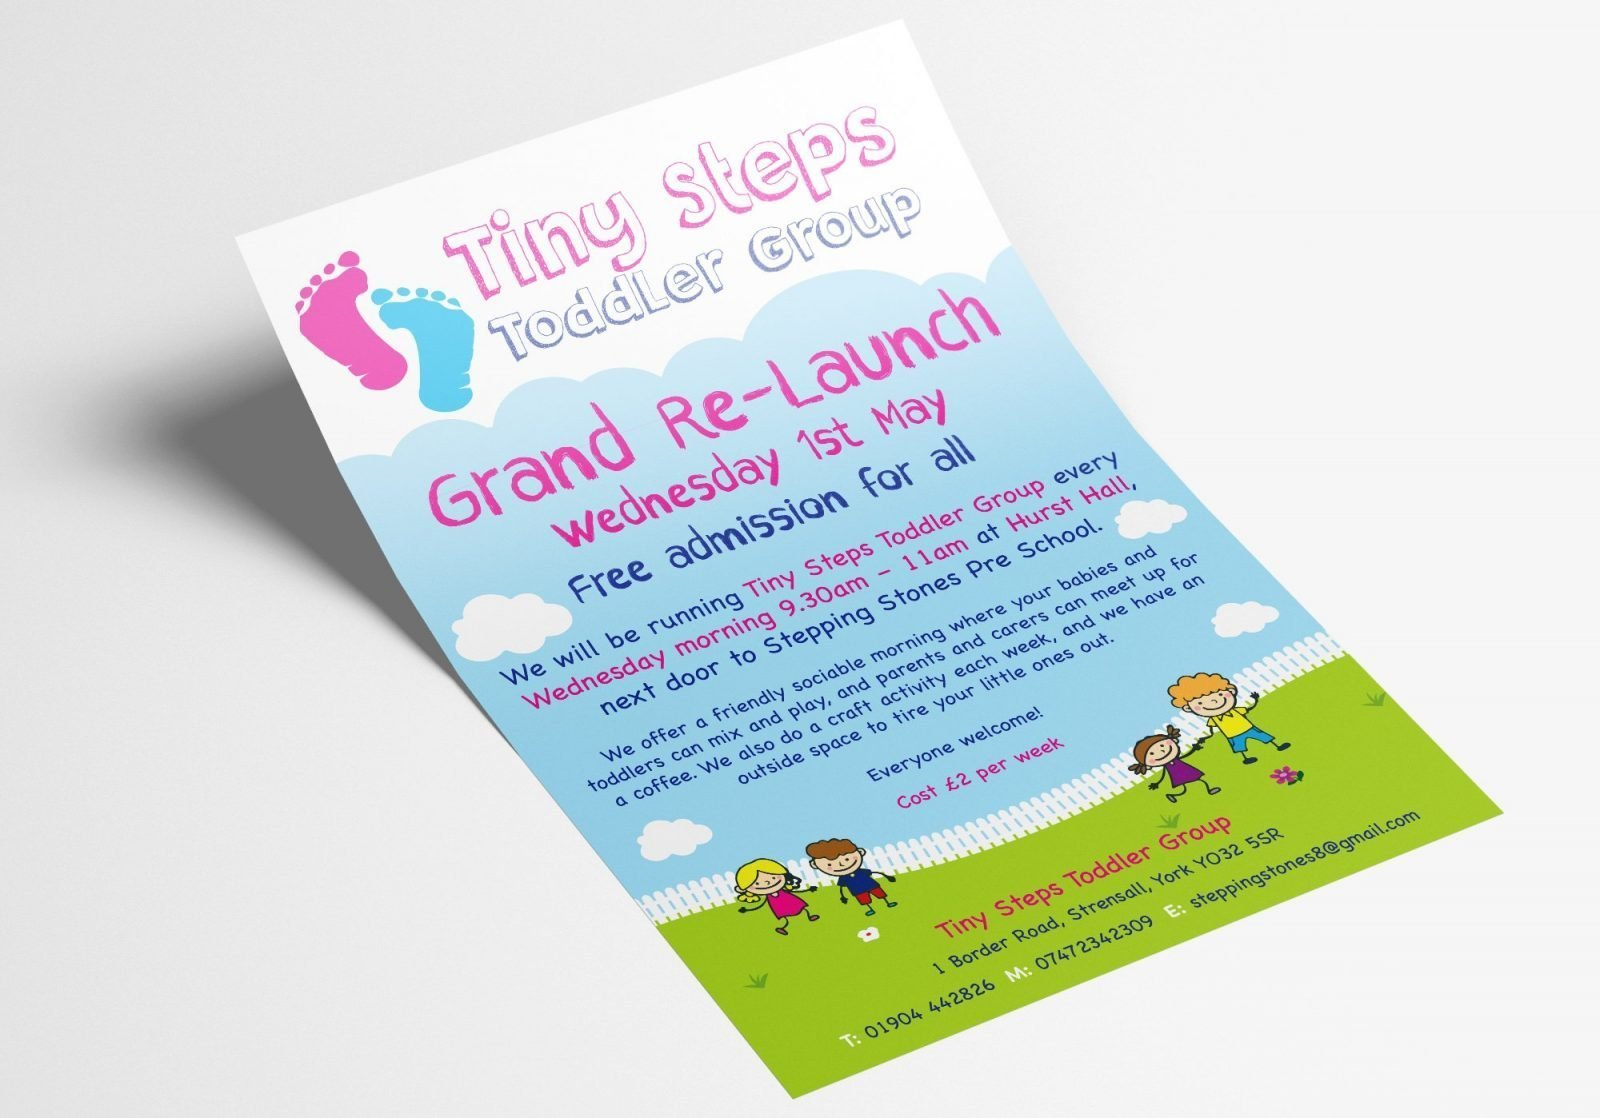 A5 Leaflet for Tiny Steps toddler group grand launch